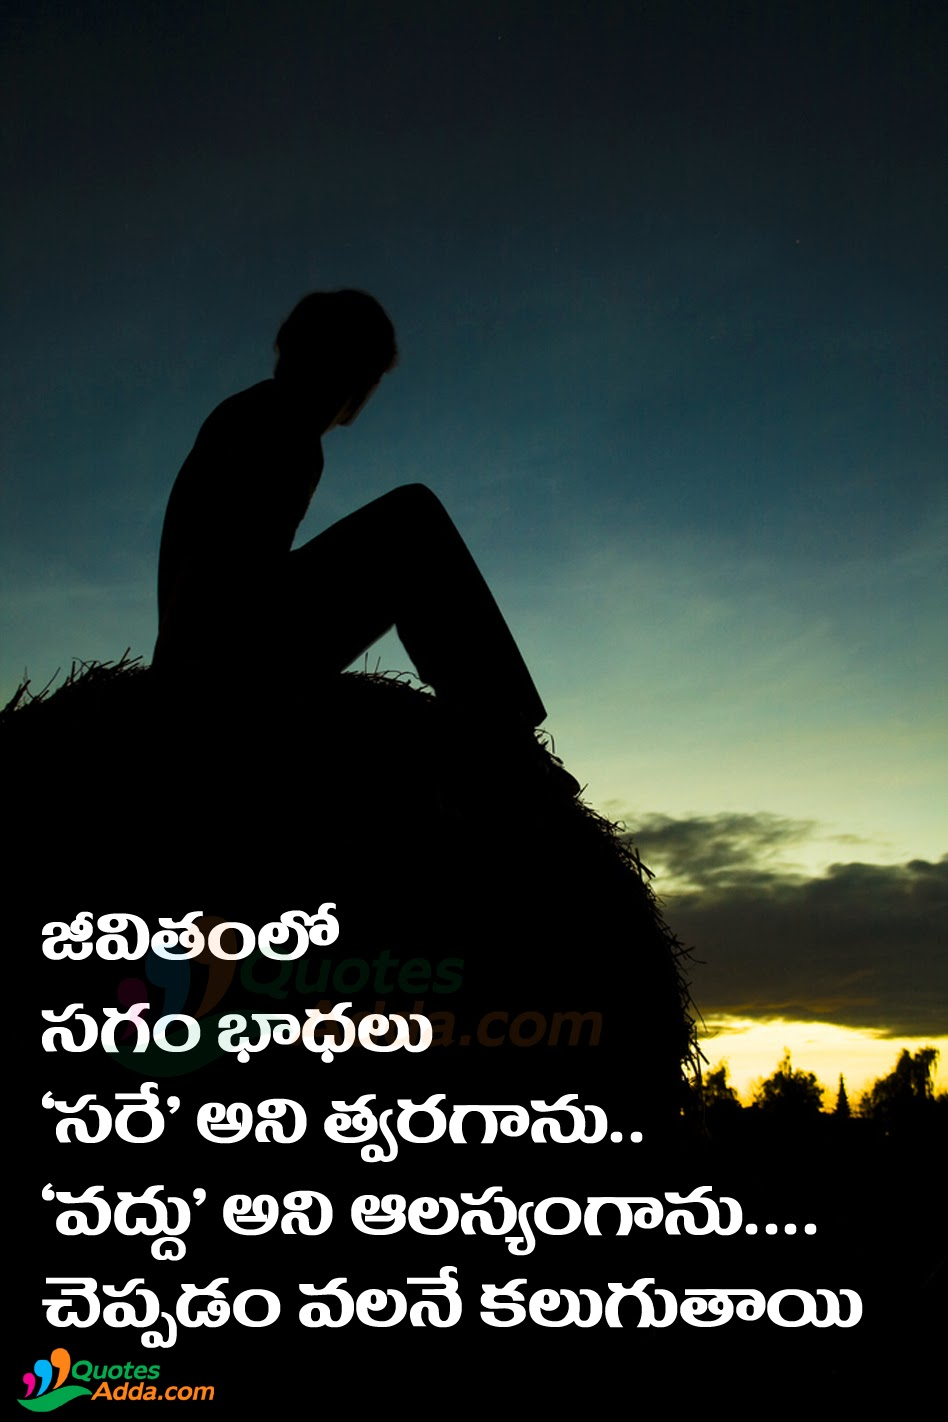 Sad Quotes About Love In Telugu : Alone Quotations in Telugu Language Best Telugu Alone Quotes ...